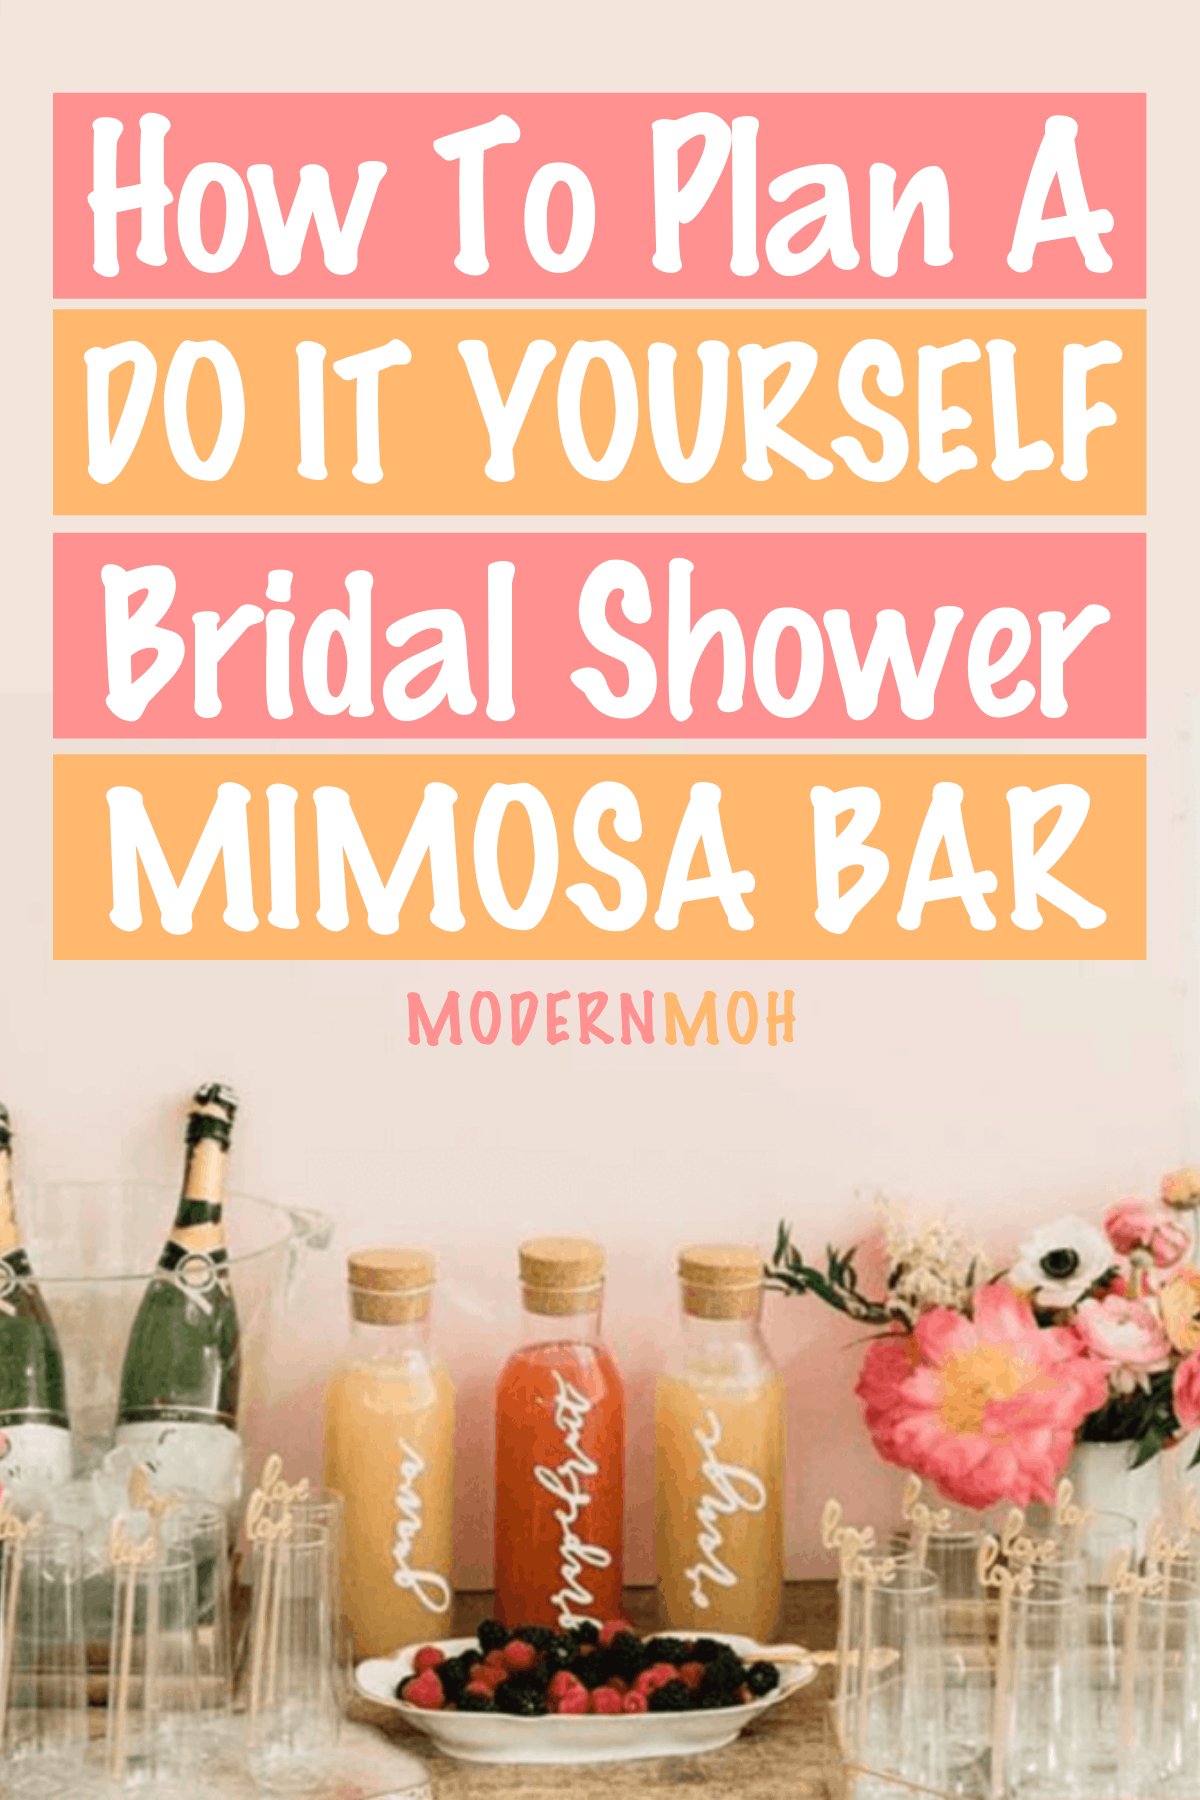 How to Plan the Perfect DIY Mimosa Bar for Your BFF's Bridal Shower